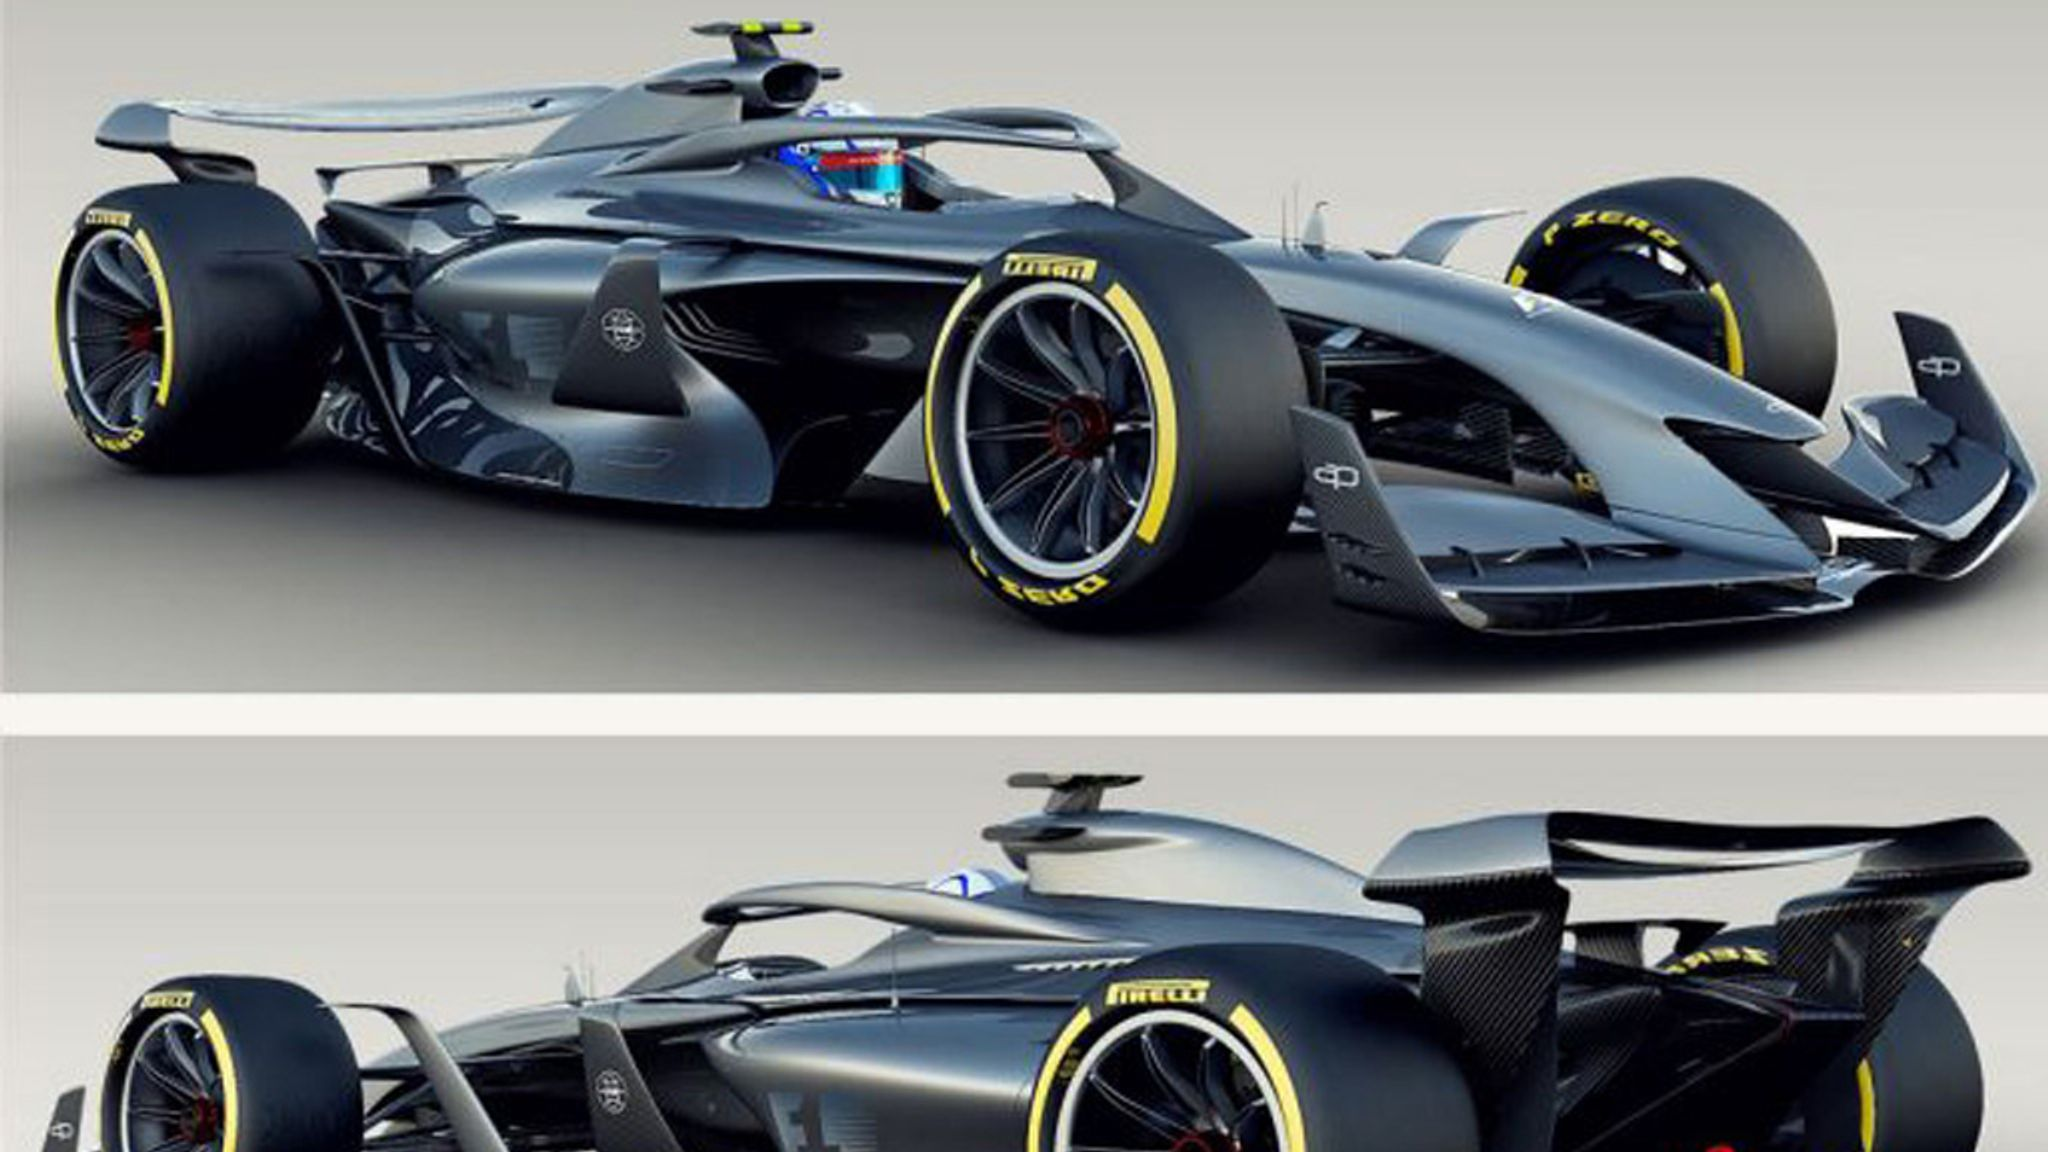 F1 reveals 2021 concept cars with aim to improve racing | F1